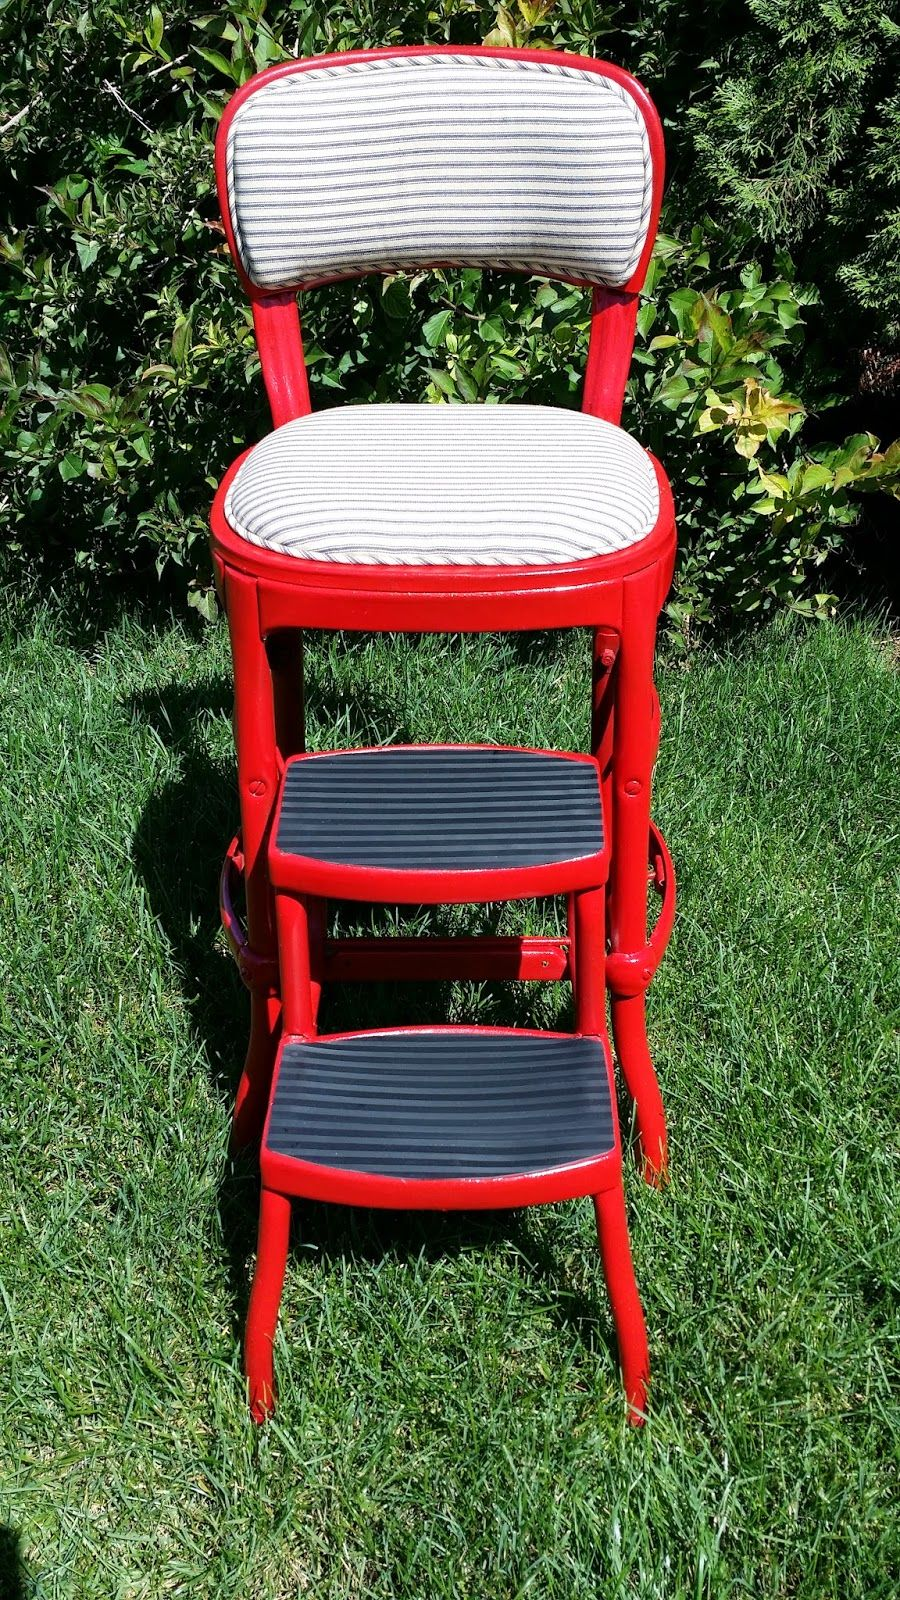 I picked up this vintage step stoolchair at the worlds